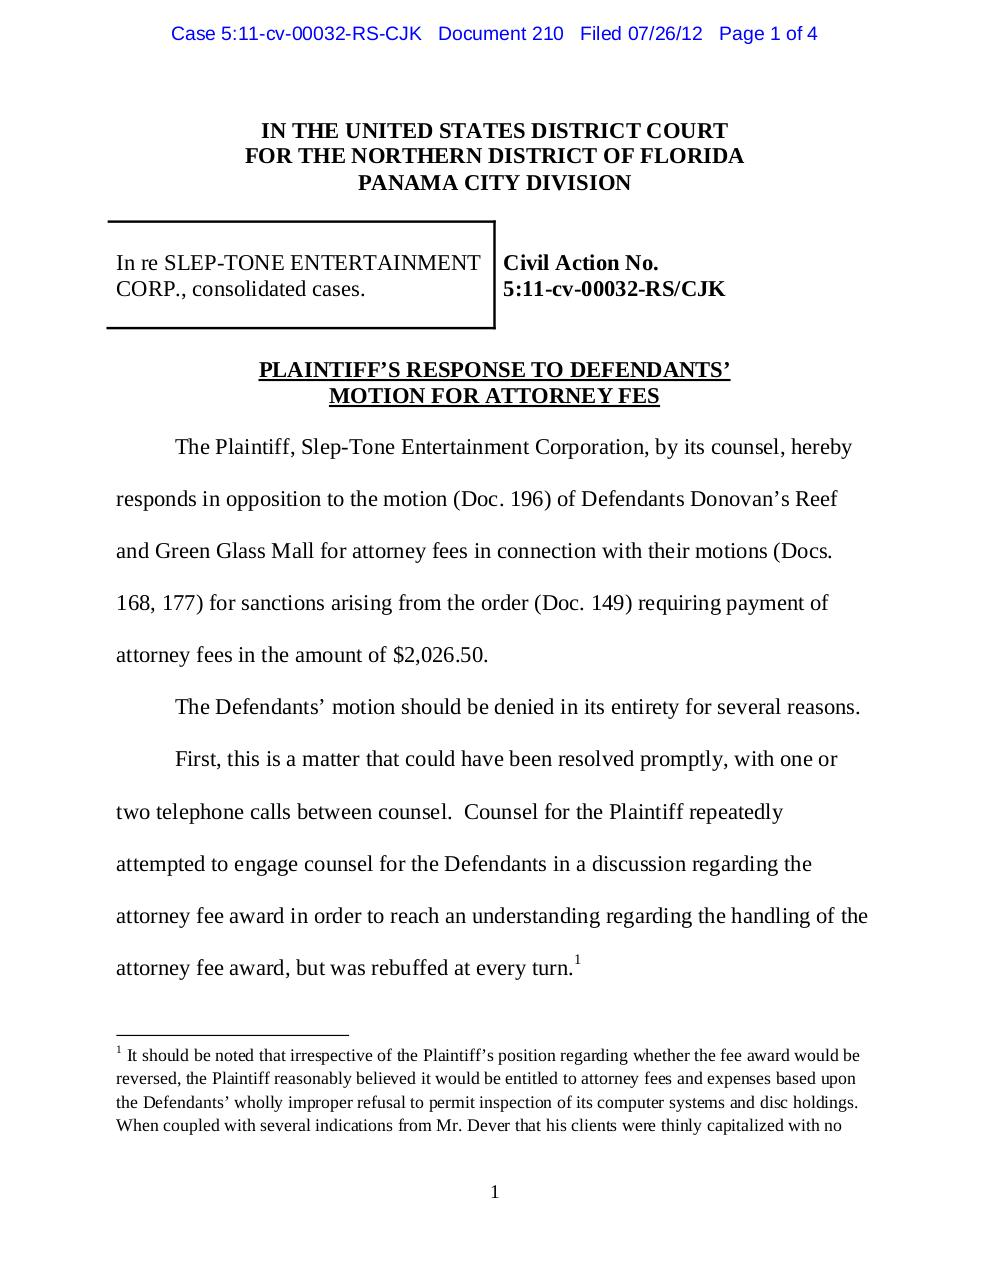 Panama 210 Plaintiff's Response to Defendants' Motion for Attorney Fees re motion to compel sanctions of $2,026.50..pdf - page 1/4